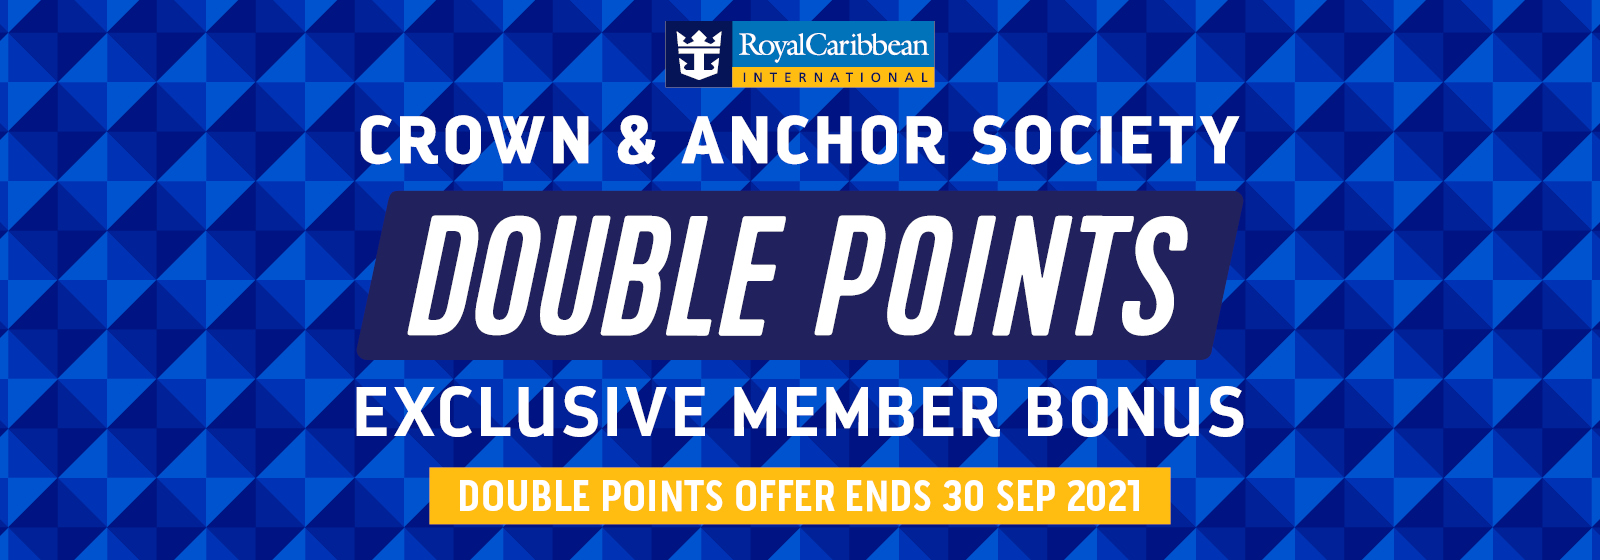 Royal Caribbean - Crown & Anchor Double Points